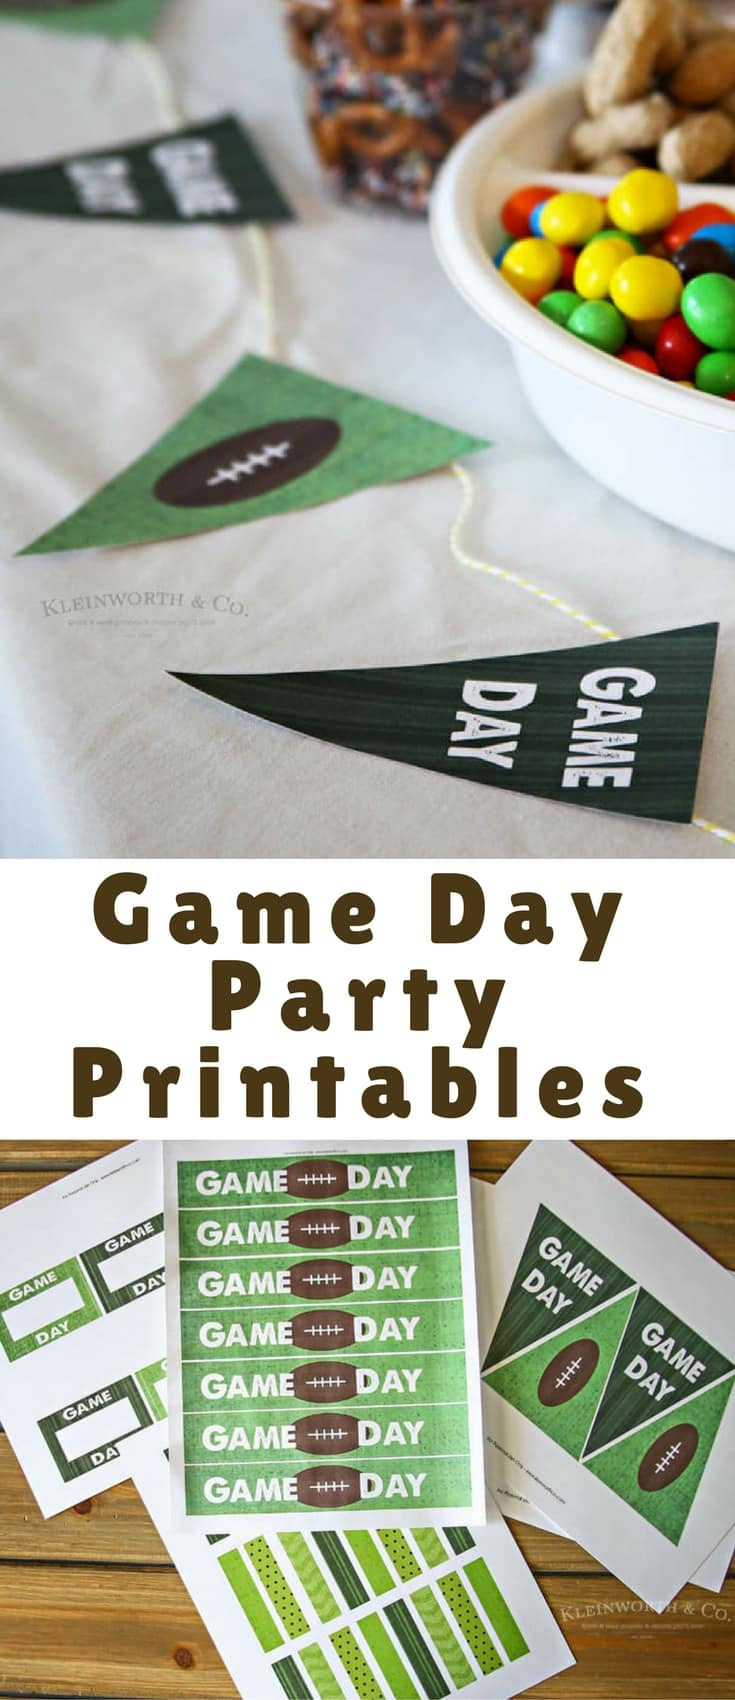 Game Day Party Printables to decorate your kickoff party table! Perfect for die-hard football fans that love all things game day! Just cut, tape & enjoy!